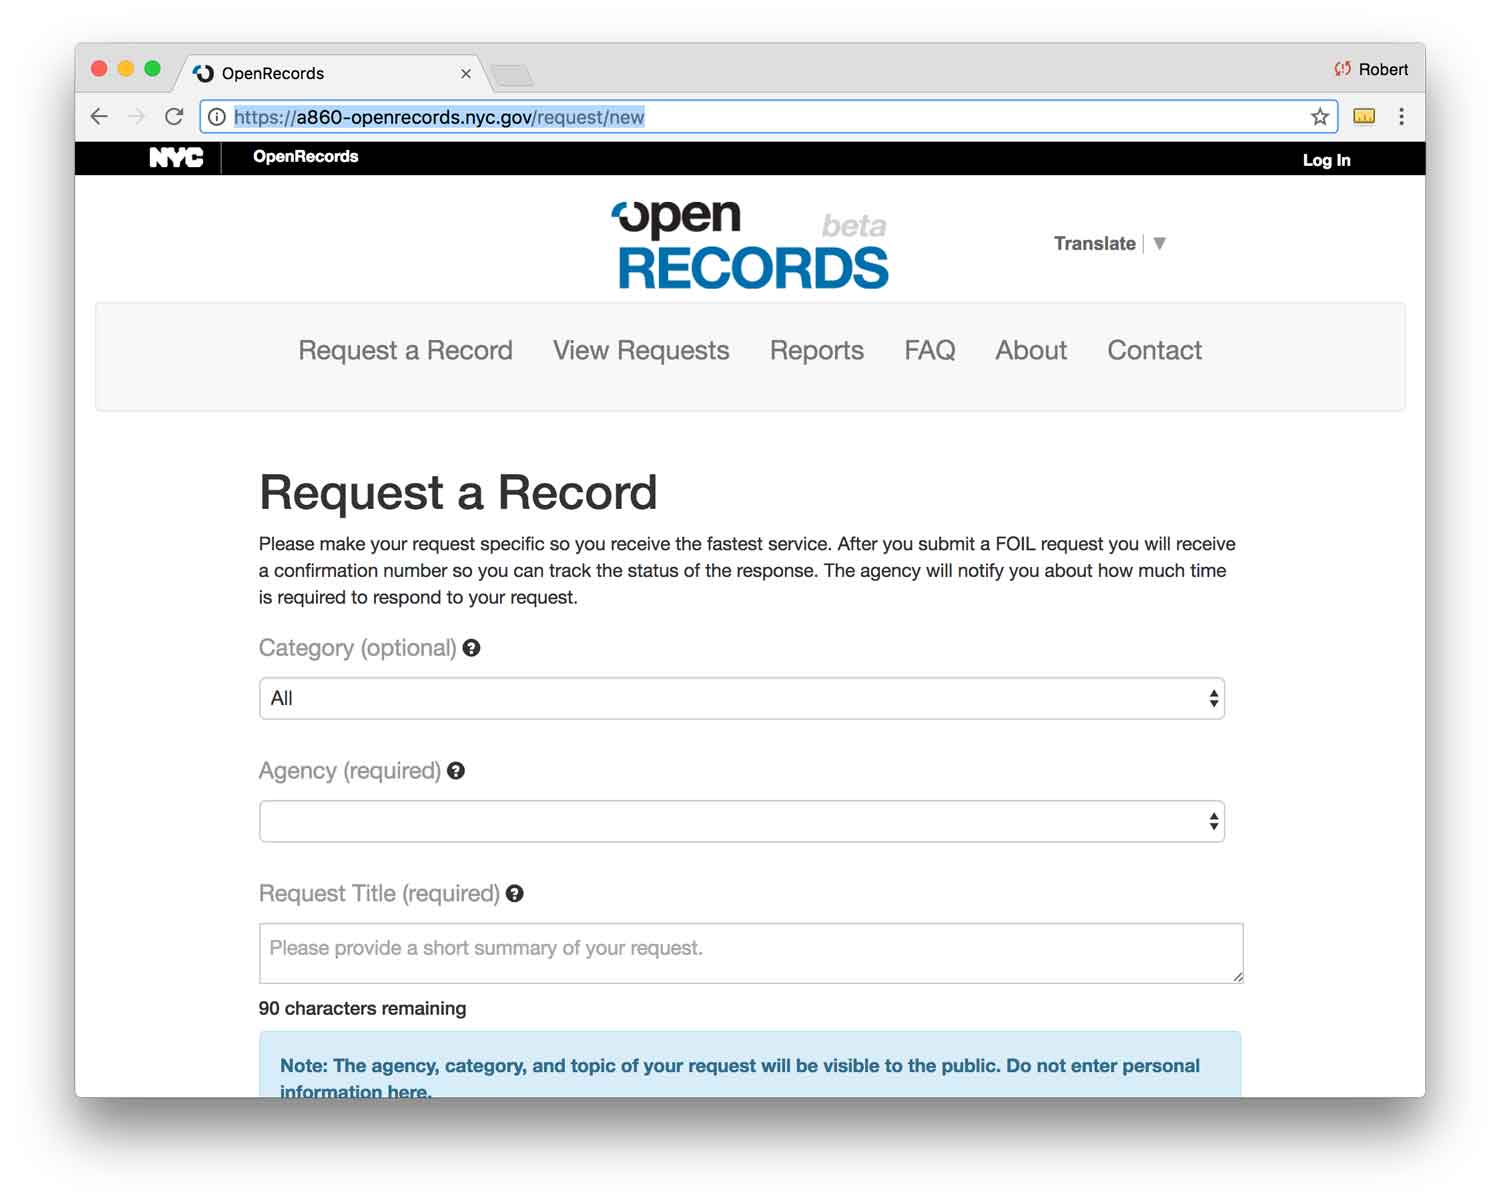 nyc-open-records-request-new.jpg